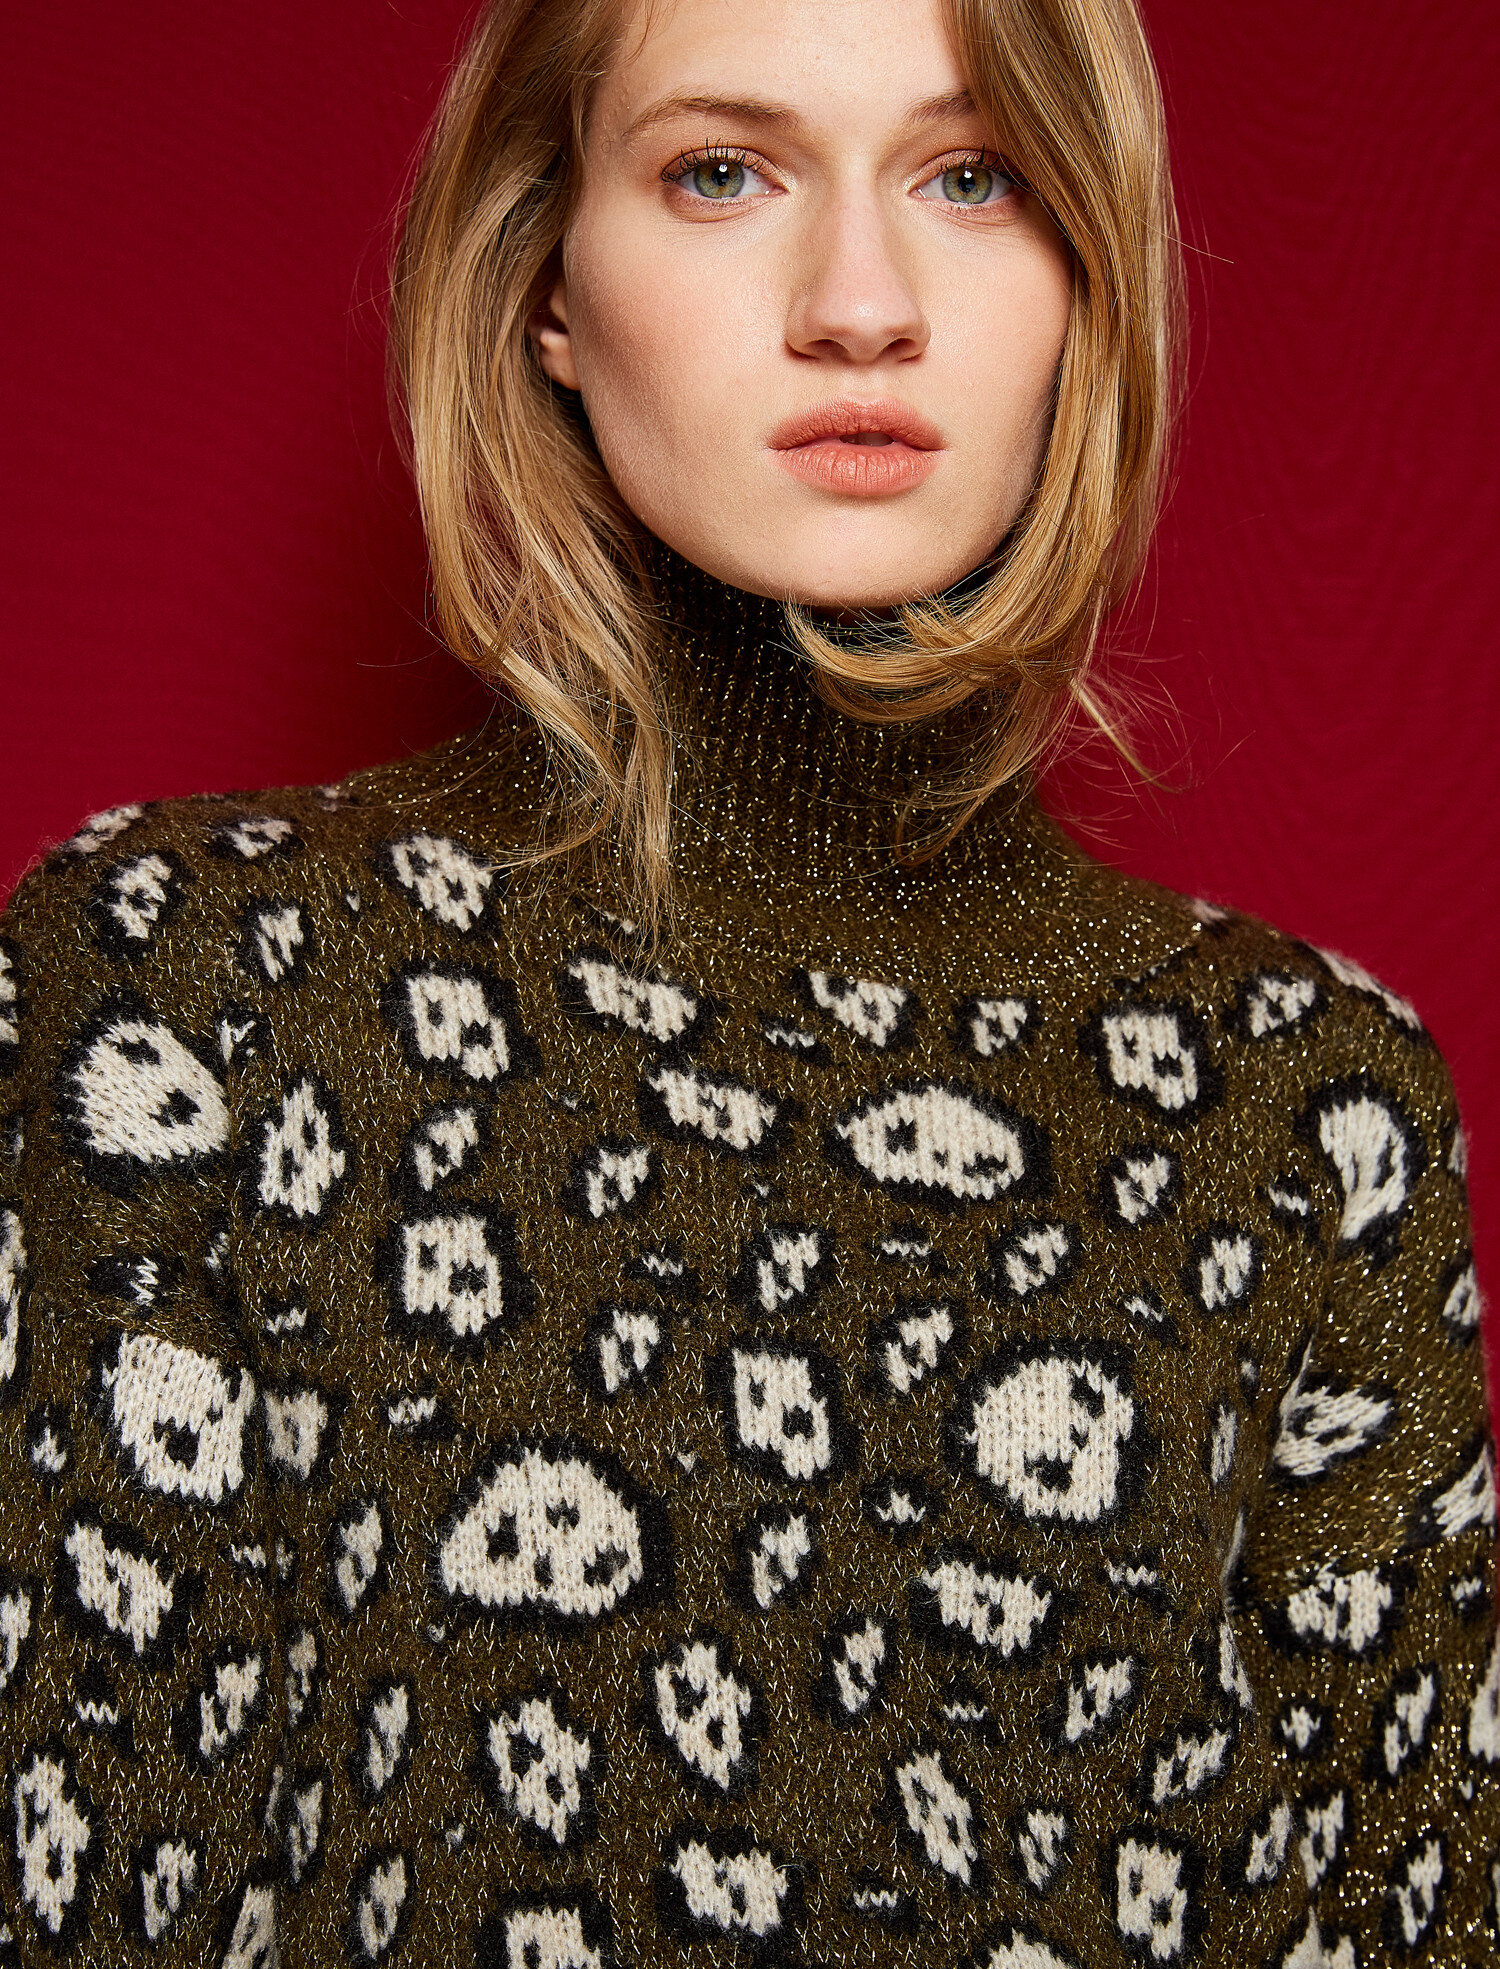 turtle neck patterned jumper. pic 1 · pic 2 ...